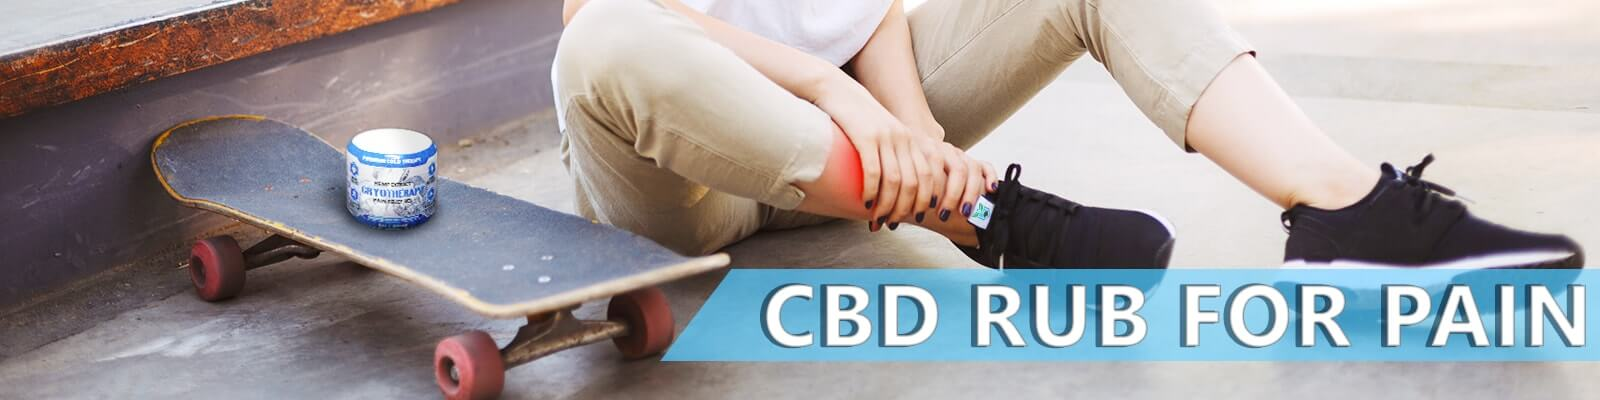 cbd rub for pain